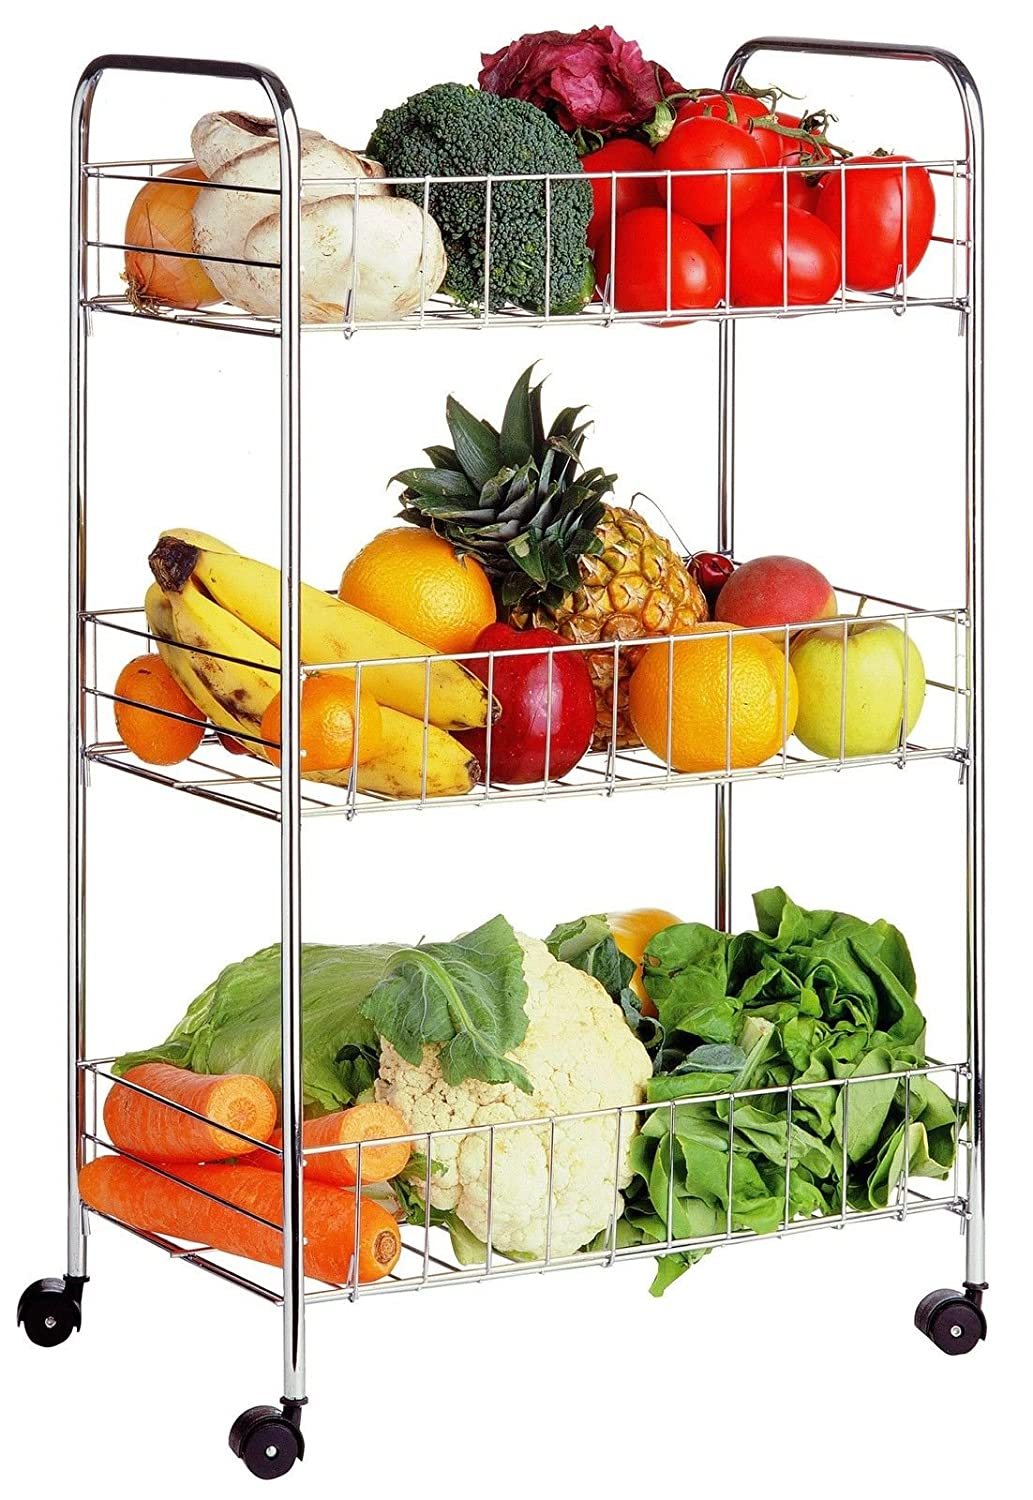 3 TIER CHROME FRUIT VEGETABLE RACK WHEELS STORAGE STAND CART TROLLEY KITCHEN electronicWorld